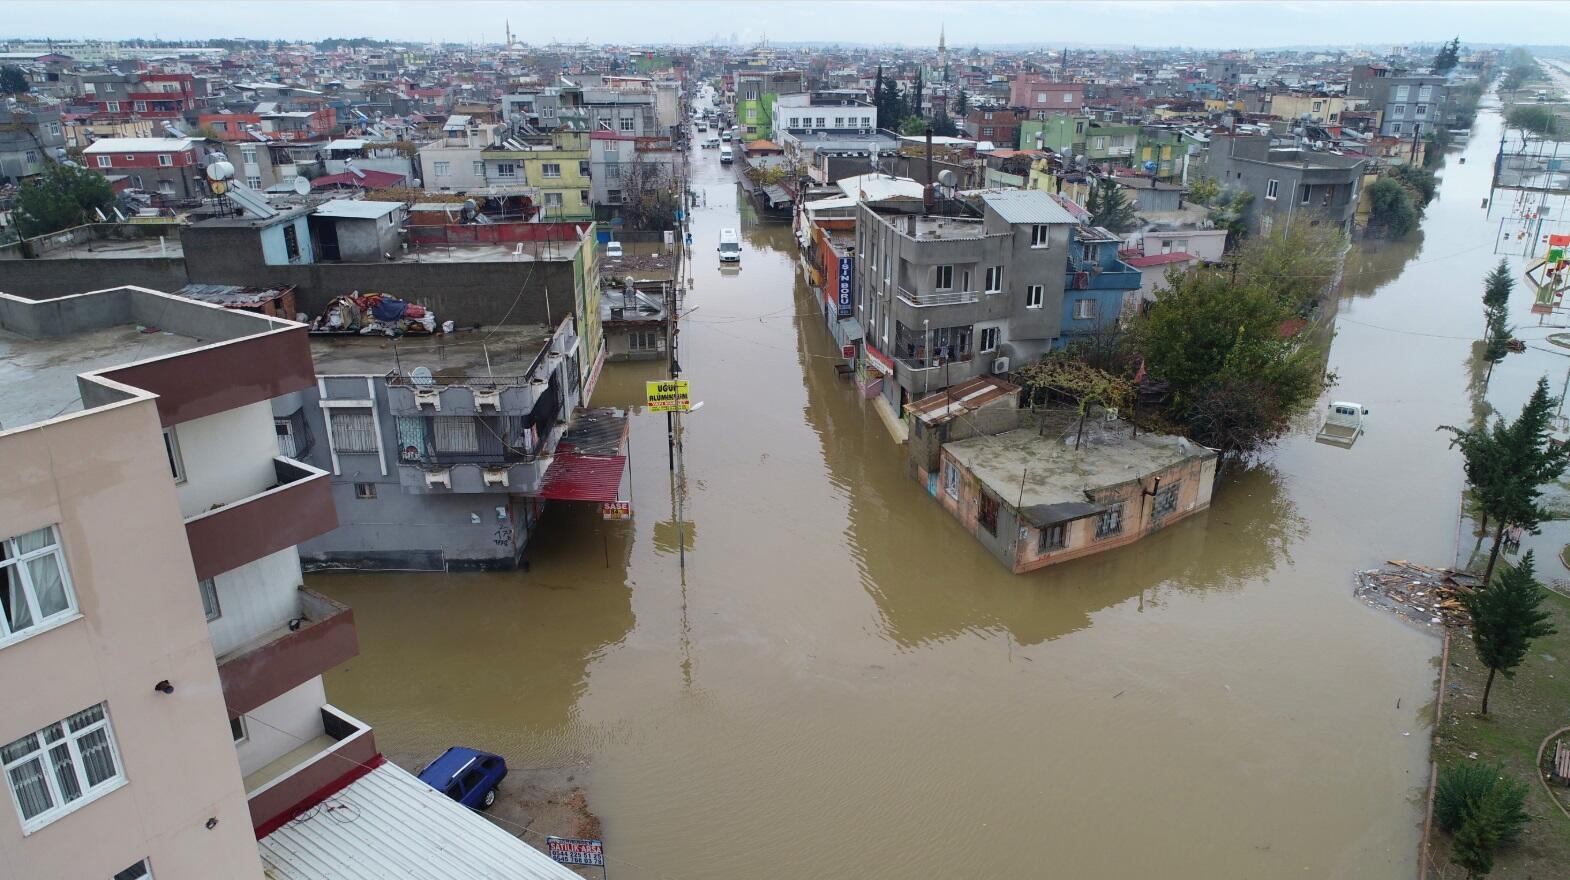 Following the Floods in Turkey: PUIC Secretary General Expresses Solidarity with Turkey